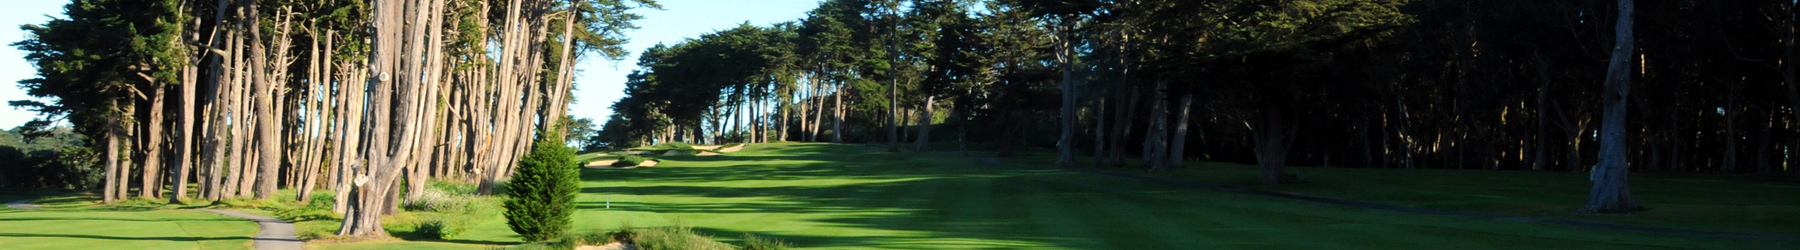 Welcome to the Presidio Golf Course & Clubhouse